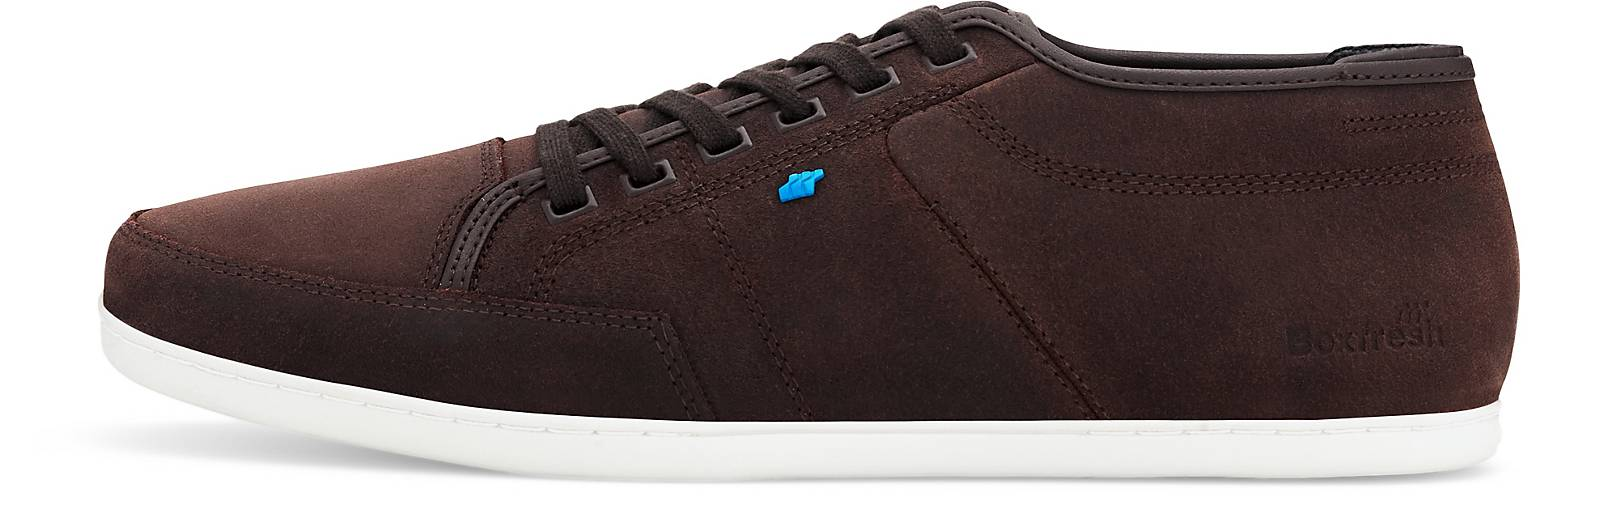 Boxfresh Sneaker SPARKO LEATHER AM